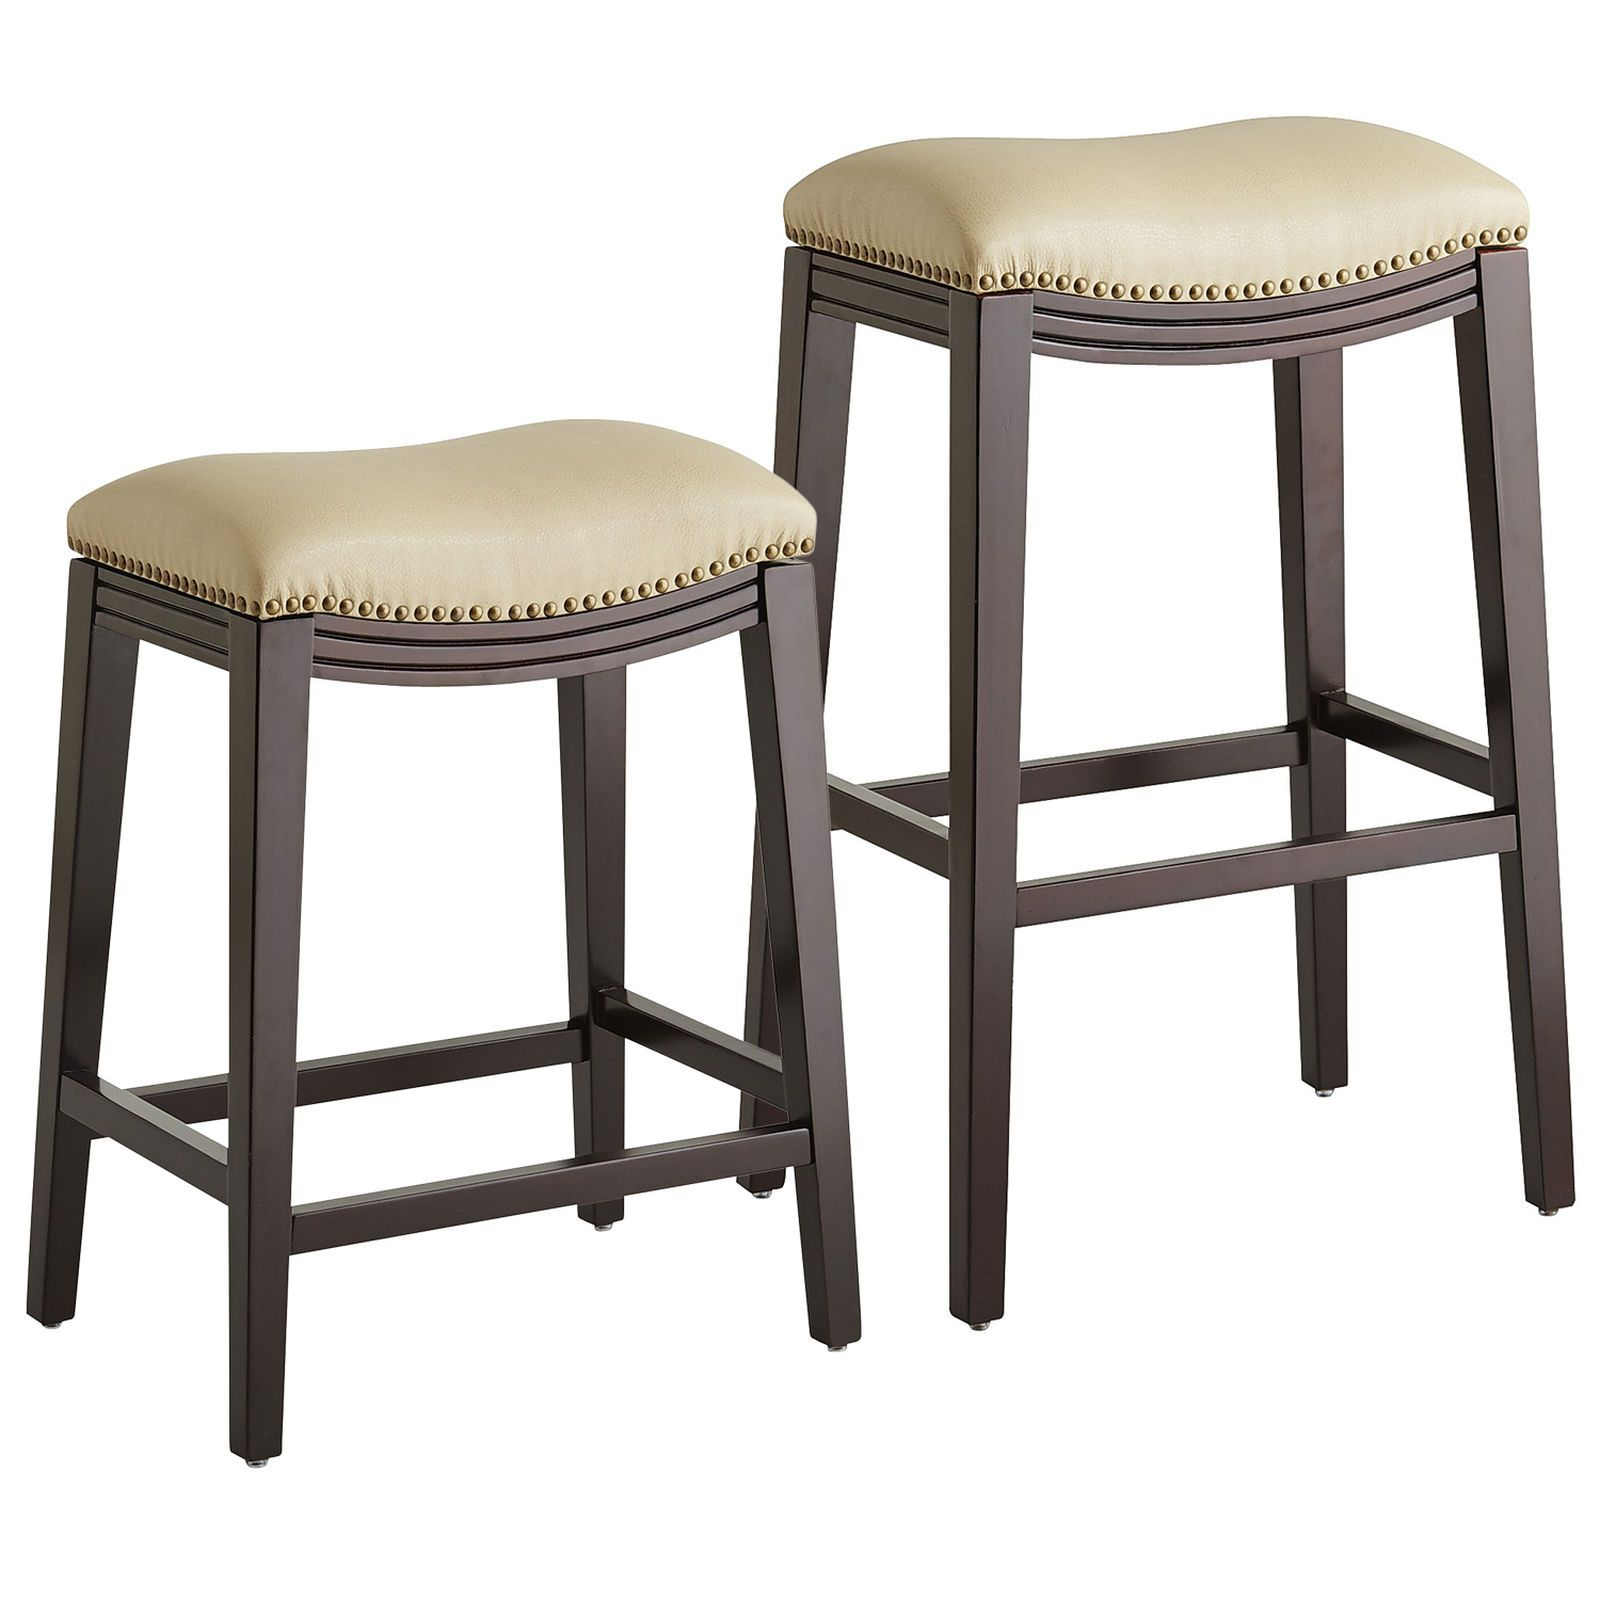 Classic Styling With A Modern Approach To Seating The Halsted Backless Barstool Combines A Performance Fabri Bar Stools Backless Bar Stools Counter Bar Stools